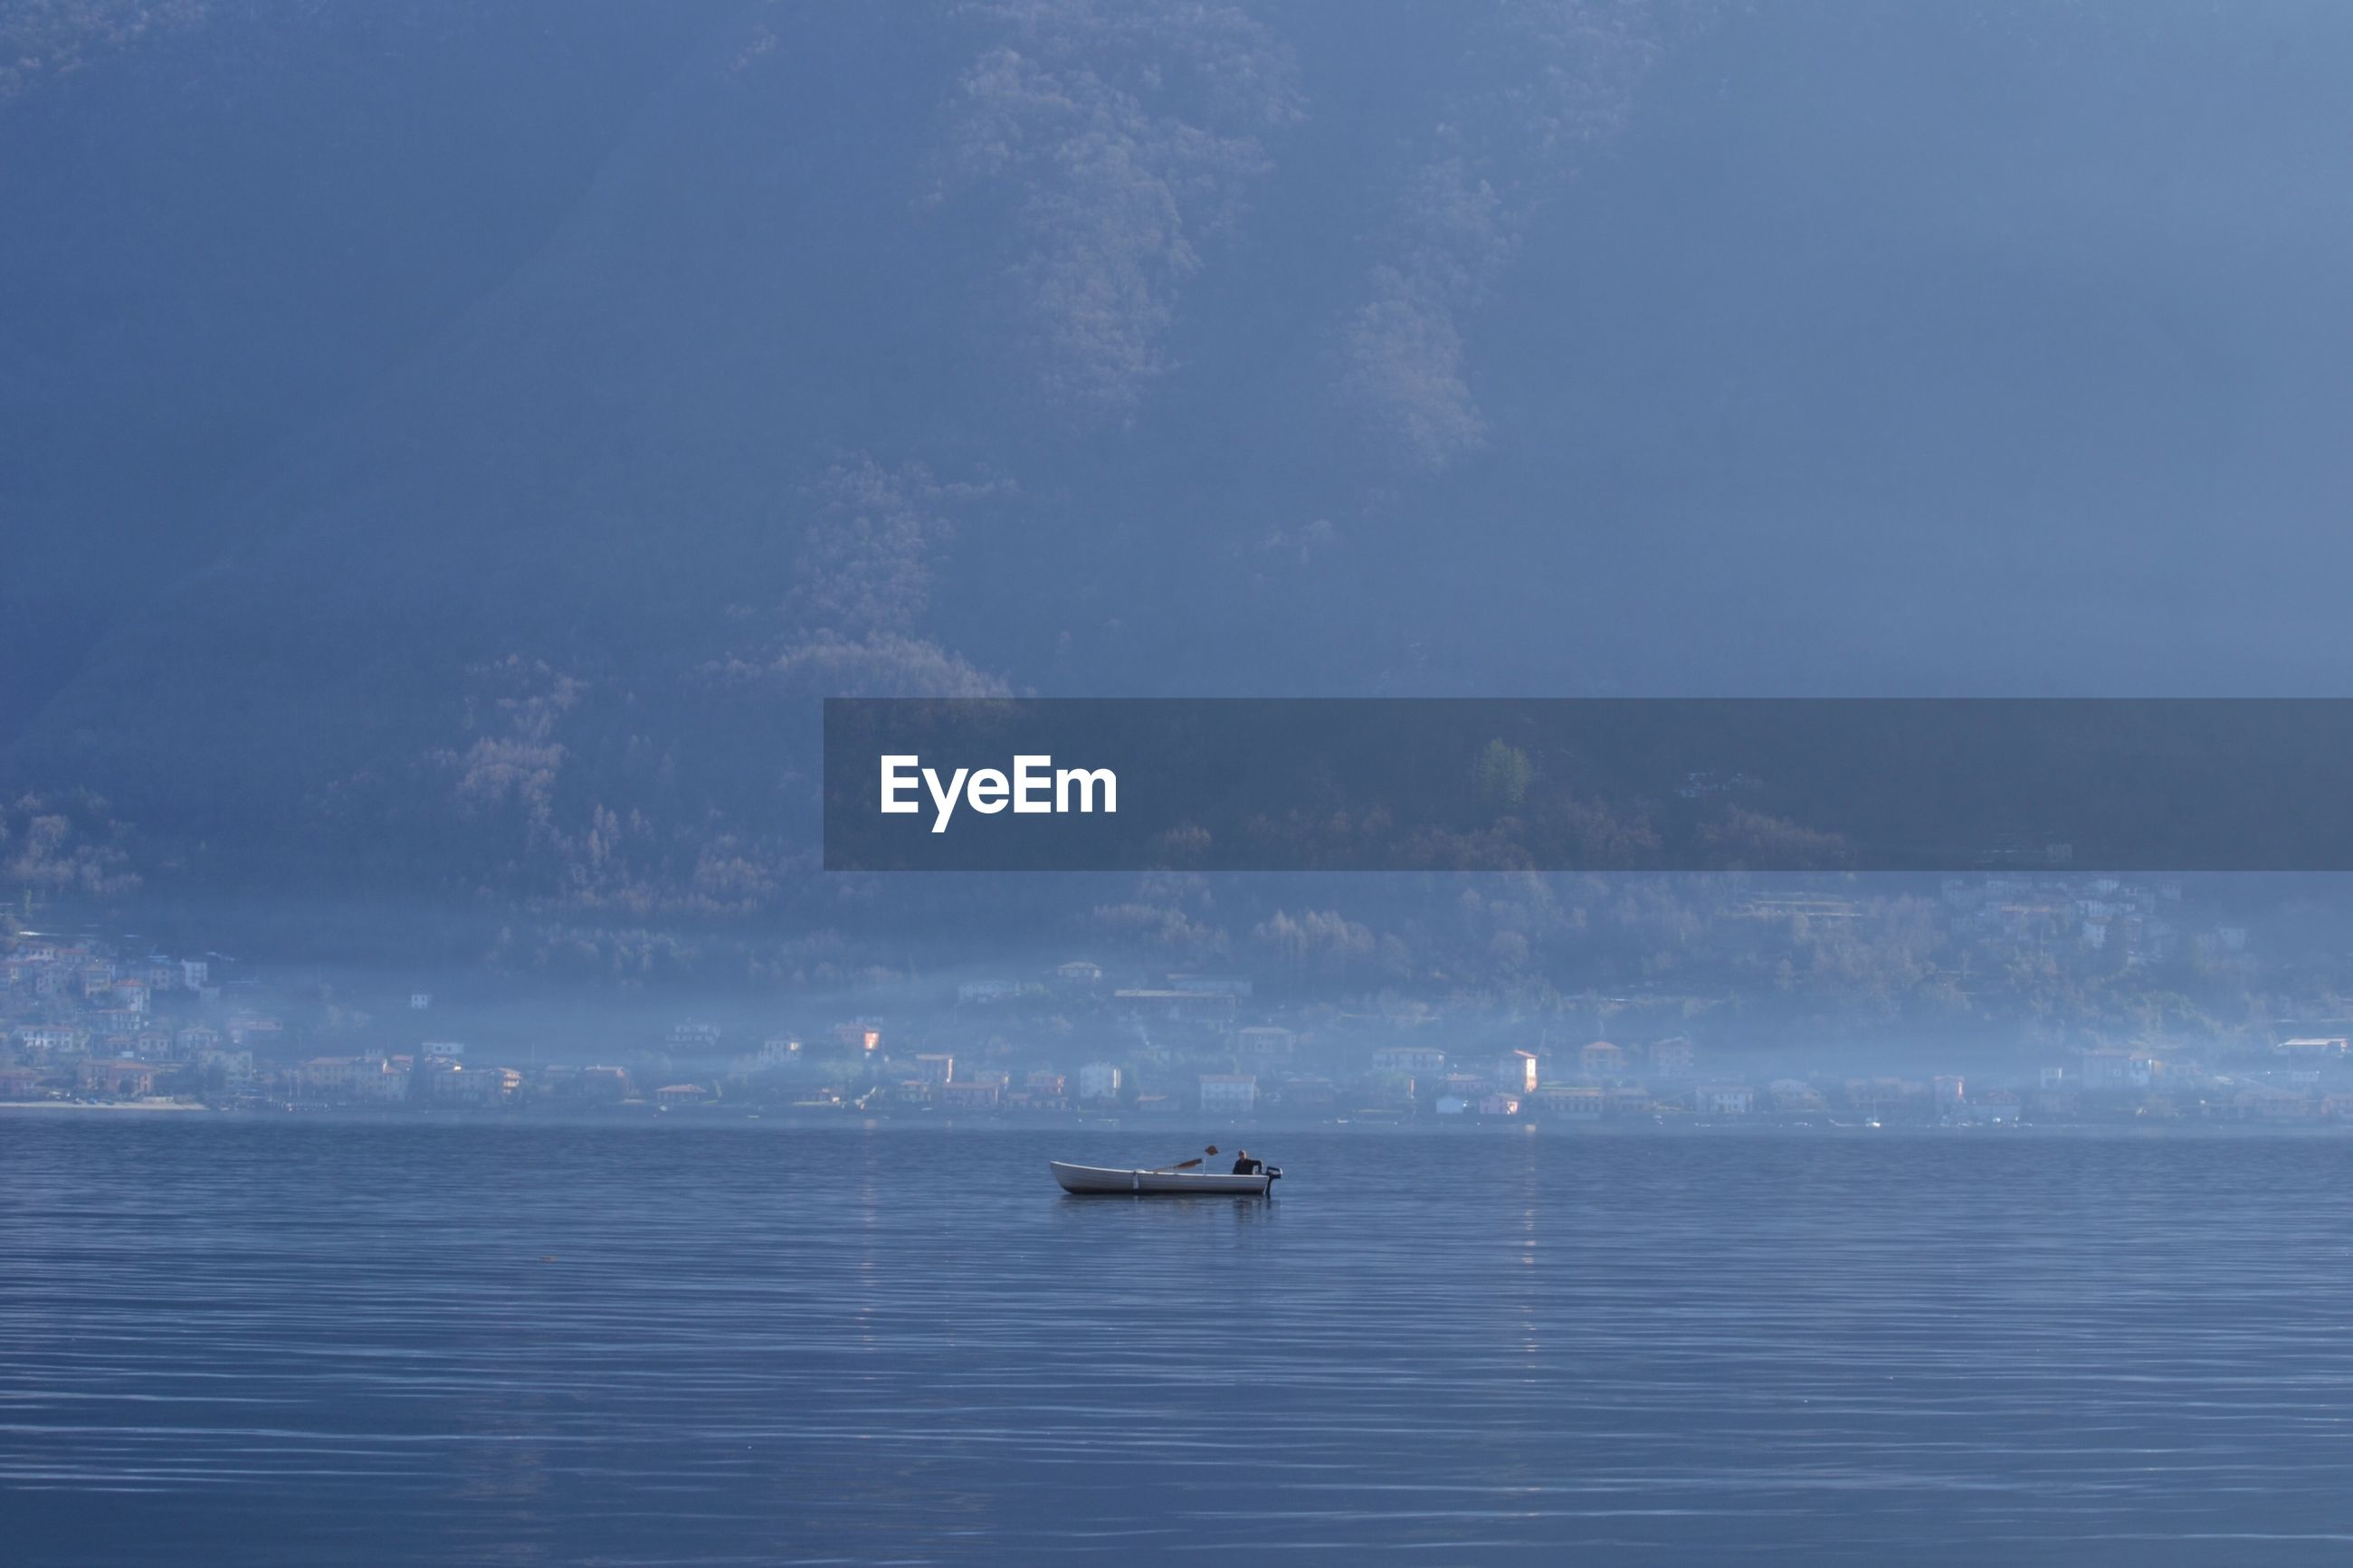 Boat in sea against trees during foggy weather